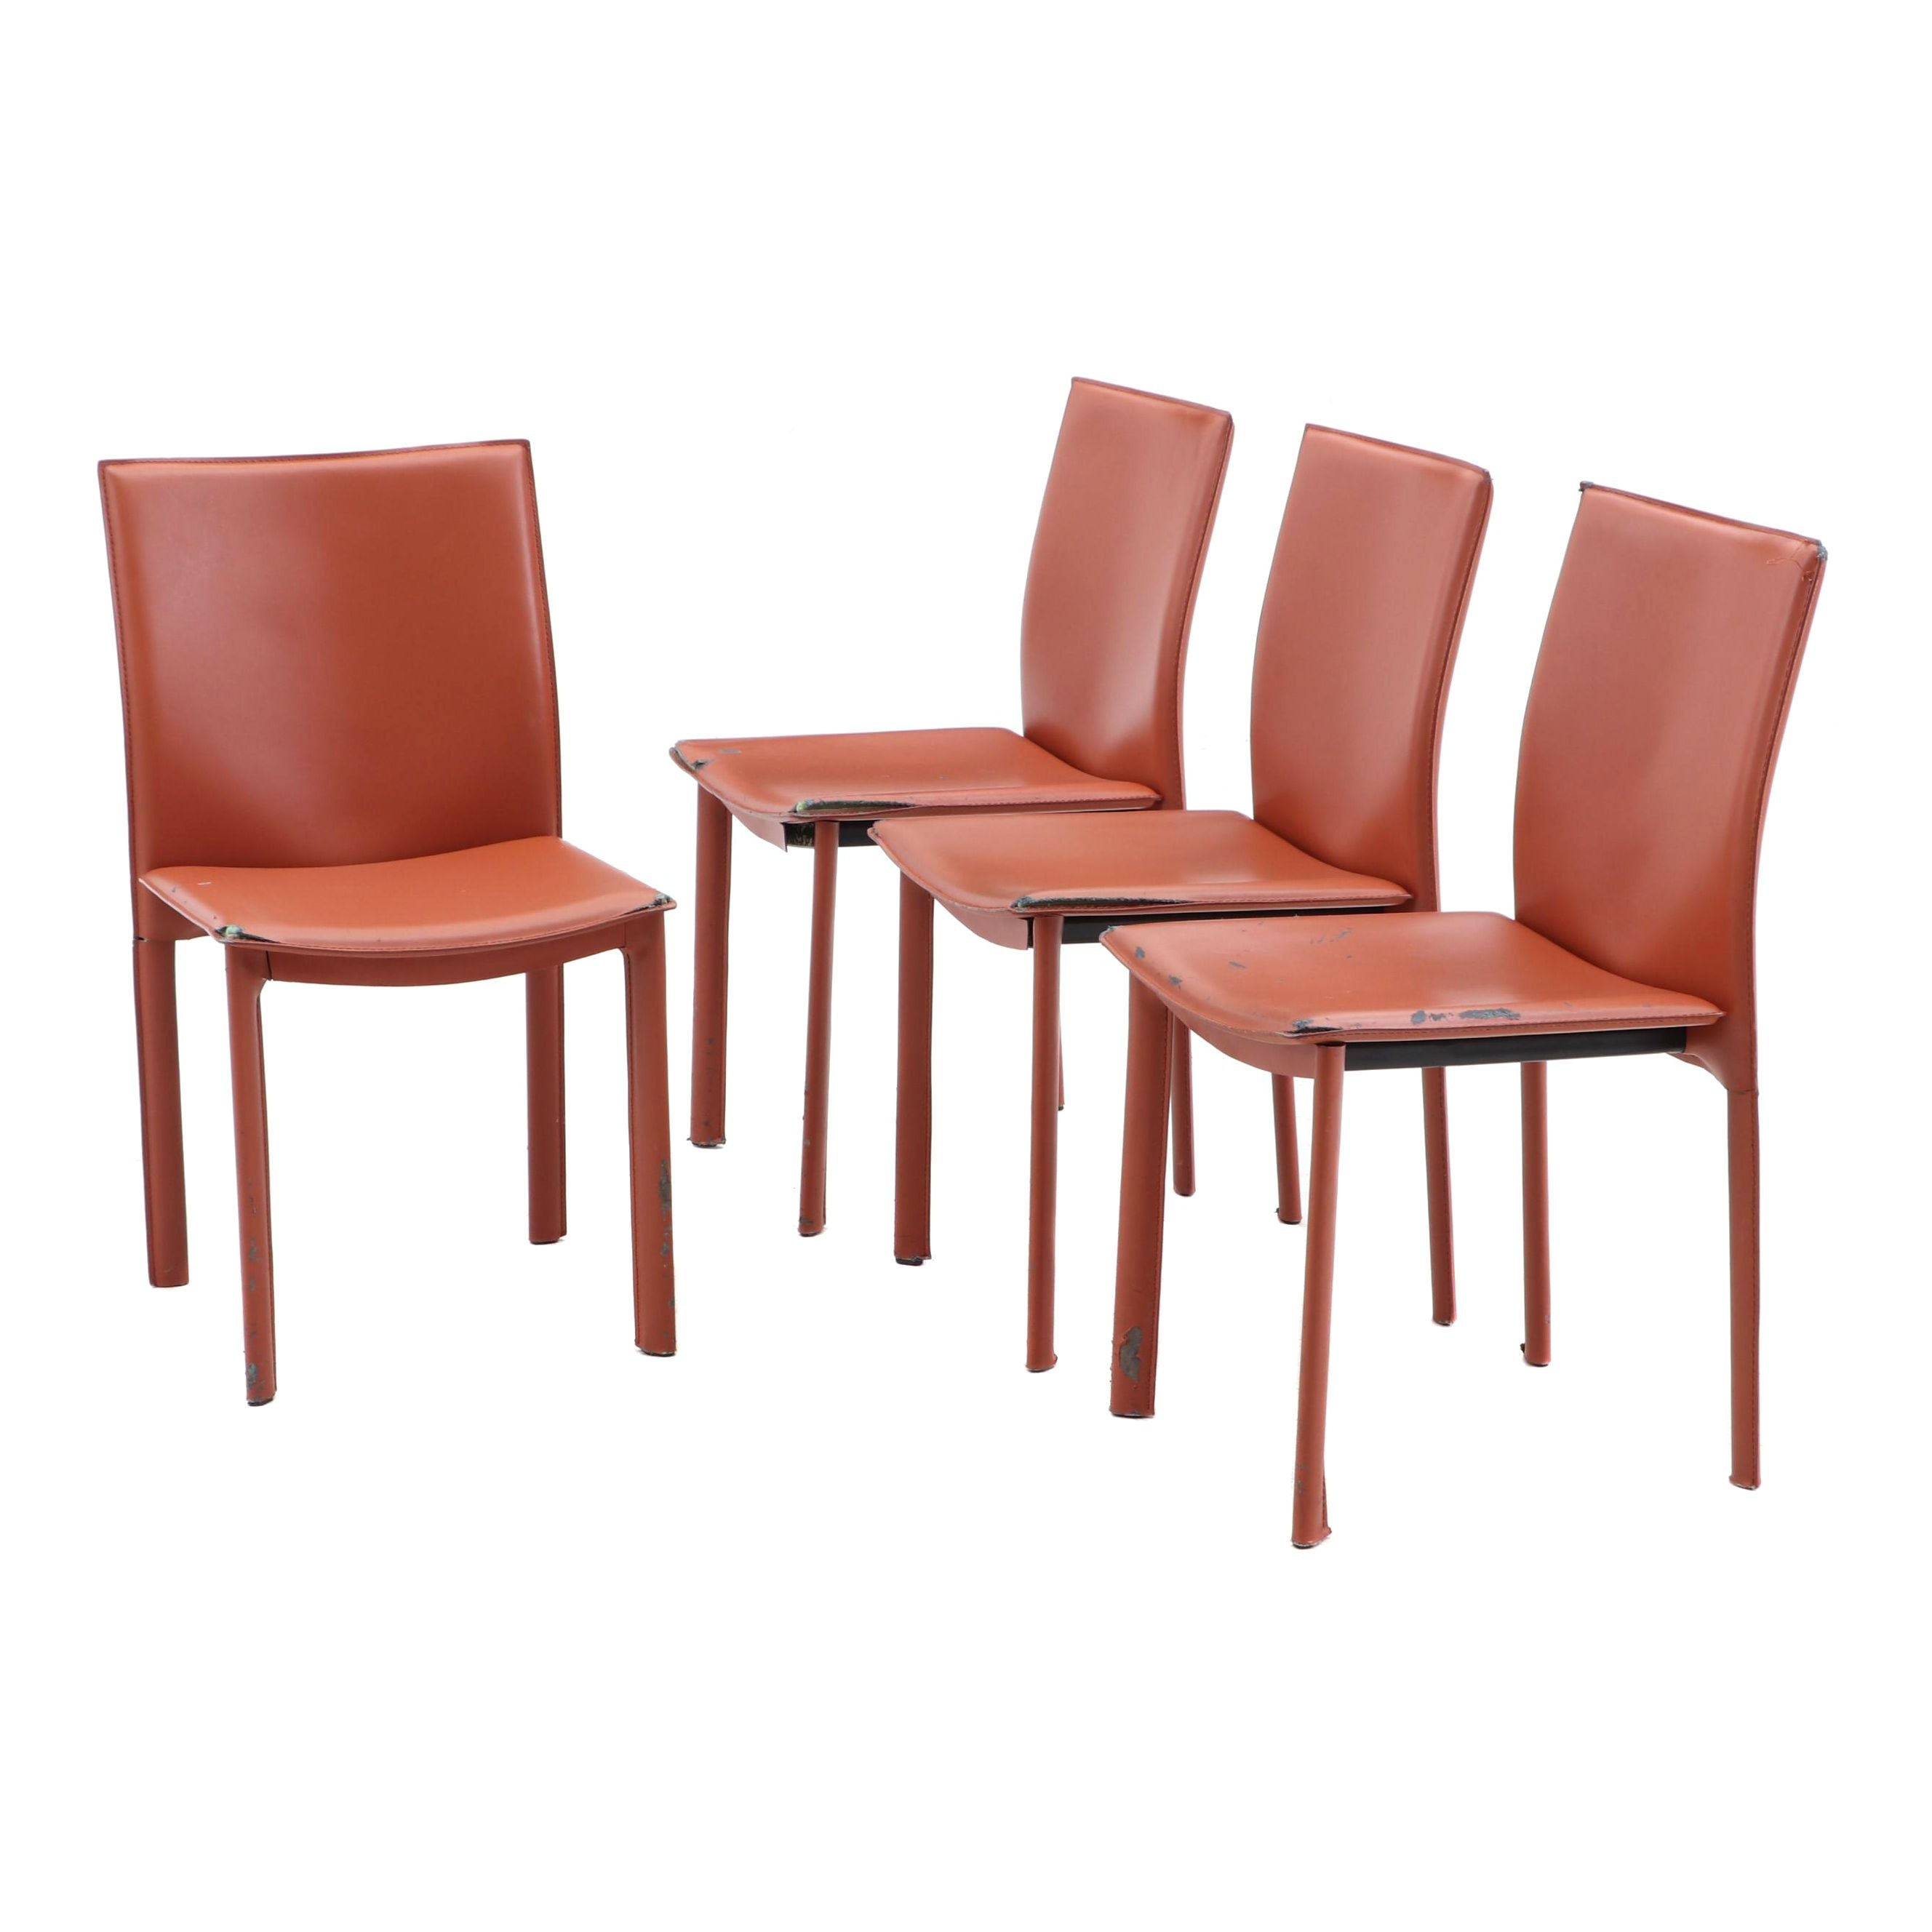 Four Faux Leather Upholstered Side Chairs